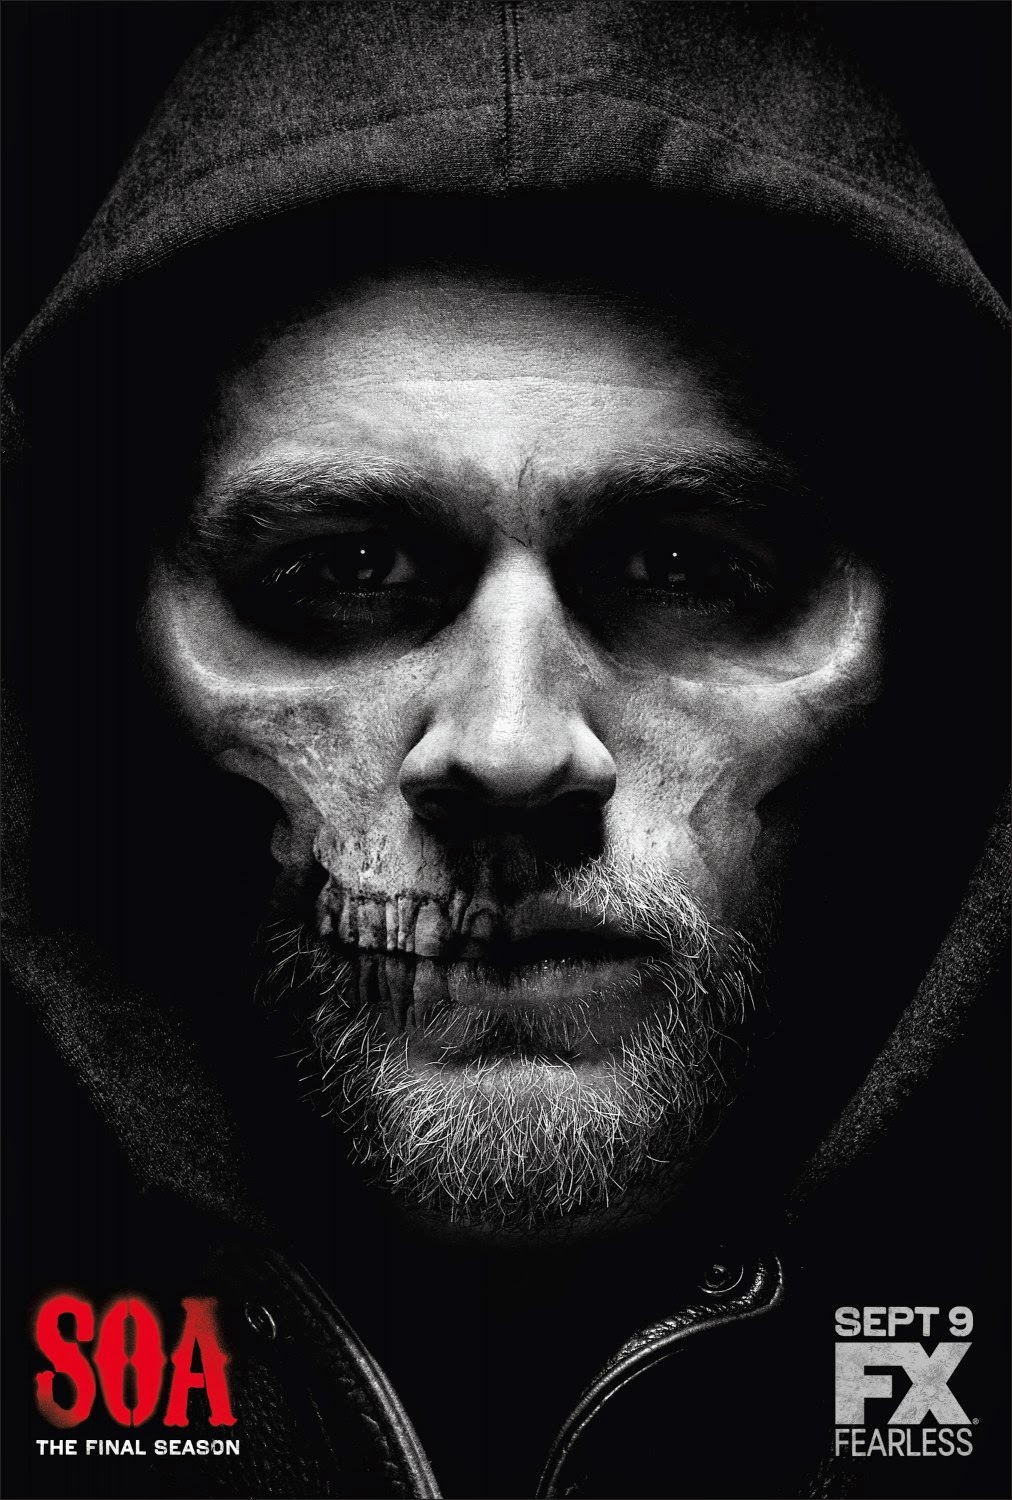 Sons of Anarchy: The Final Season One Sheet Teaser Television Poster